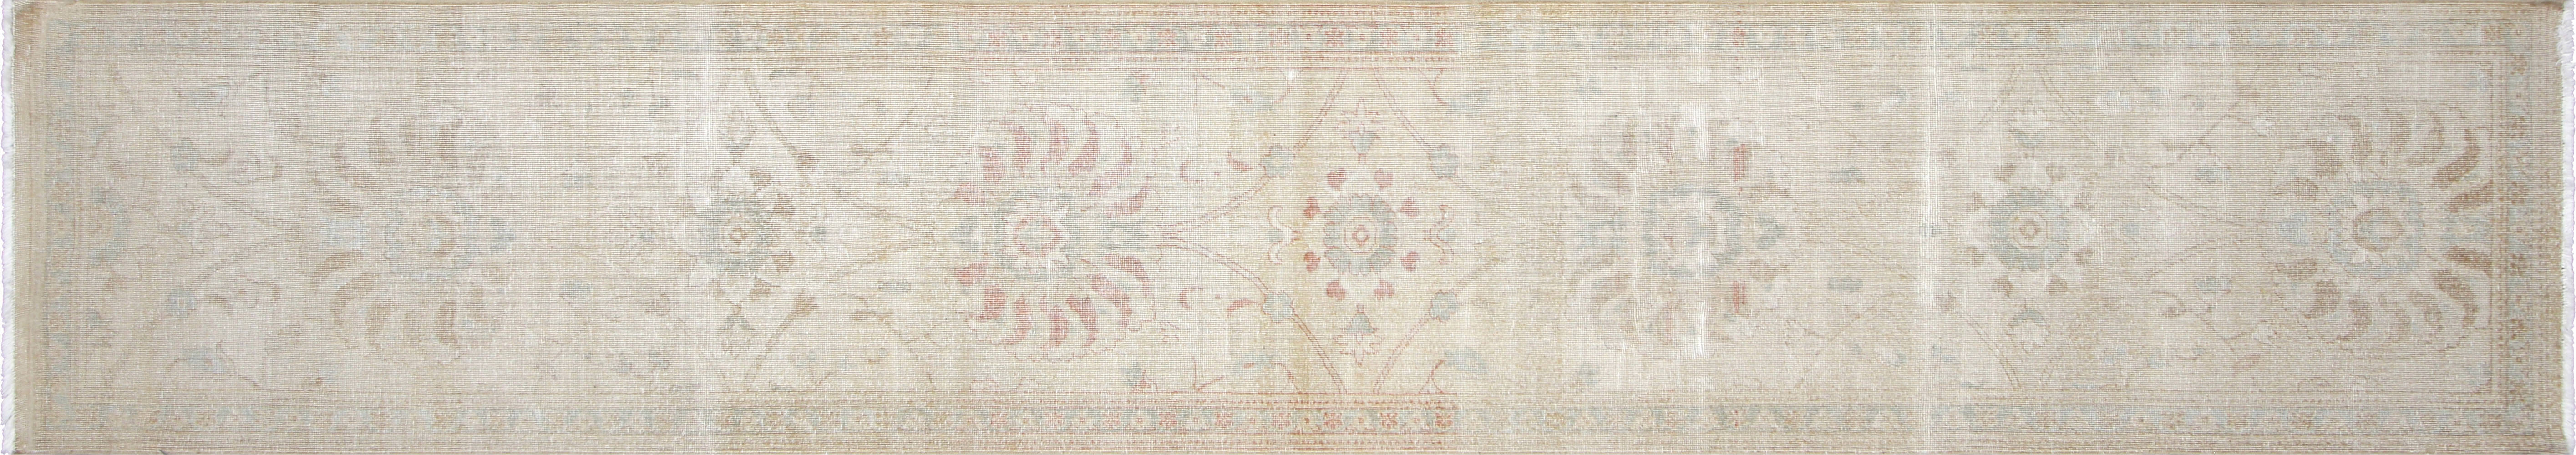 "Recently Woven Egyptian Tabriz Runner - 2'5"" x 13'9"""